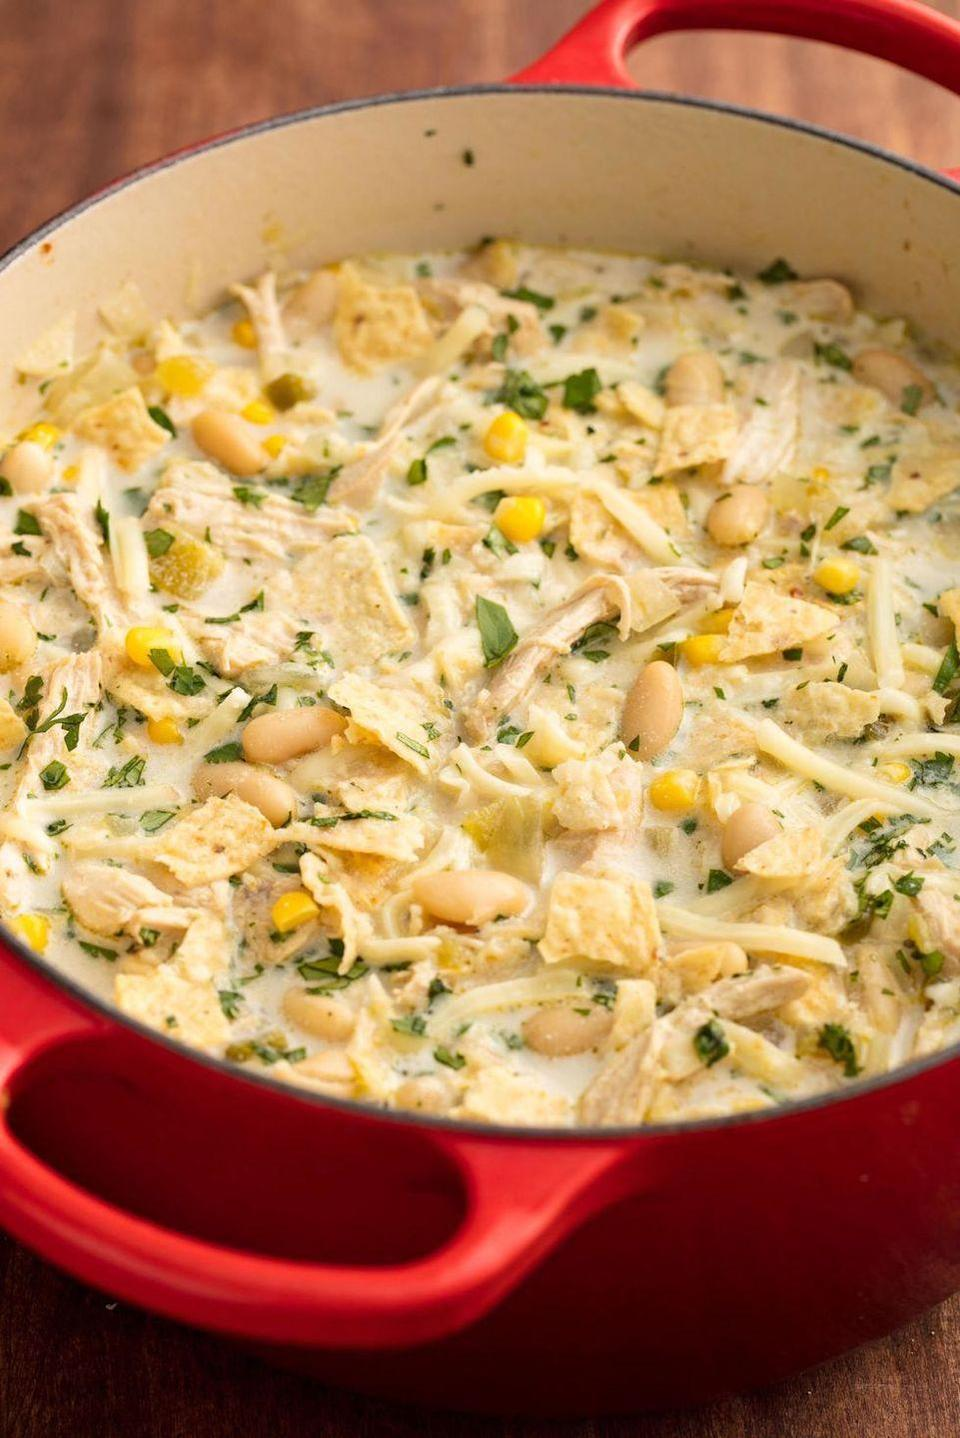 "<p>This chili is full of the good stuff: sour cream<em> and </em>cheese. </p><p><em><a href=""https://www.delish.com/cooking/recipe-ideas/recipes/a57946/easy-white-chicken-chili-recipe/"" rel=""nofollow noopener"" target=""_blank"" data-ylk=""slk:Get the recipe from Delish »"" class=""link rapid-noclick-resp"">Get the recipe from Delish »</a></em></p>"